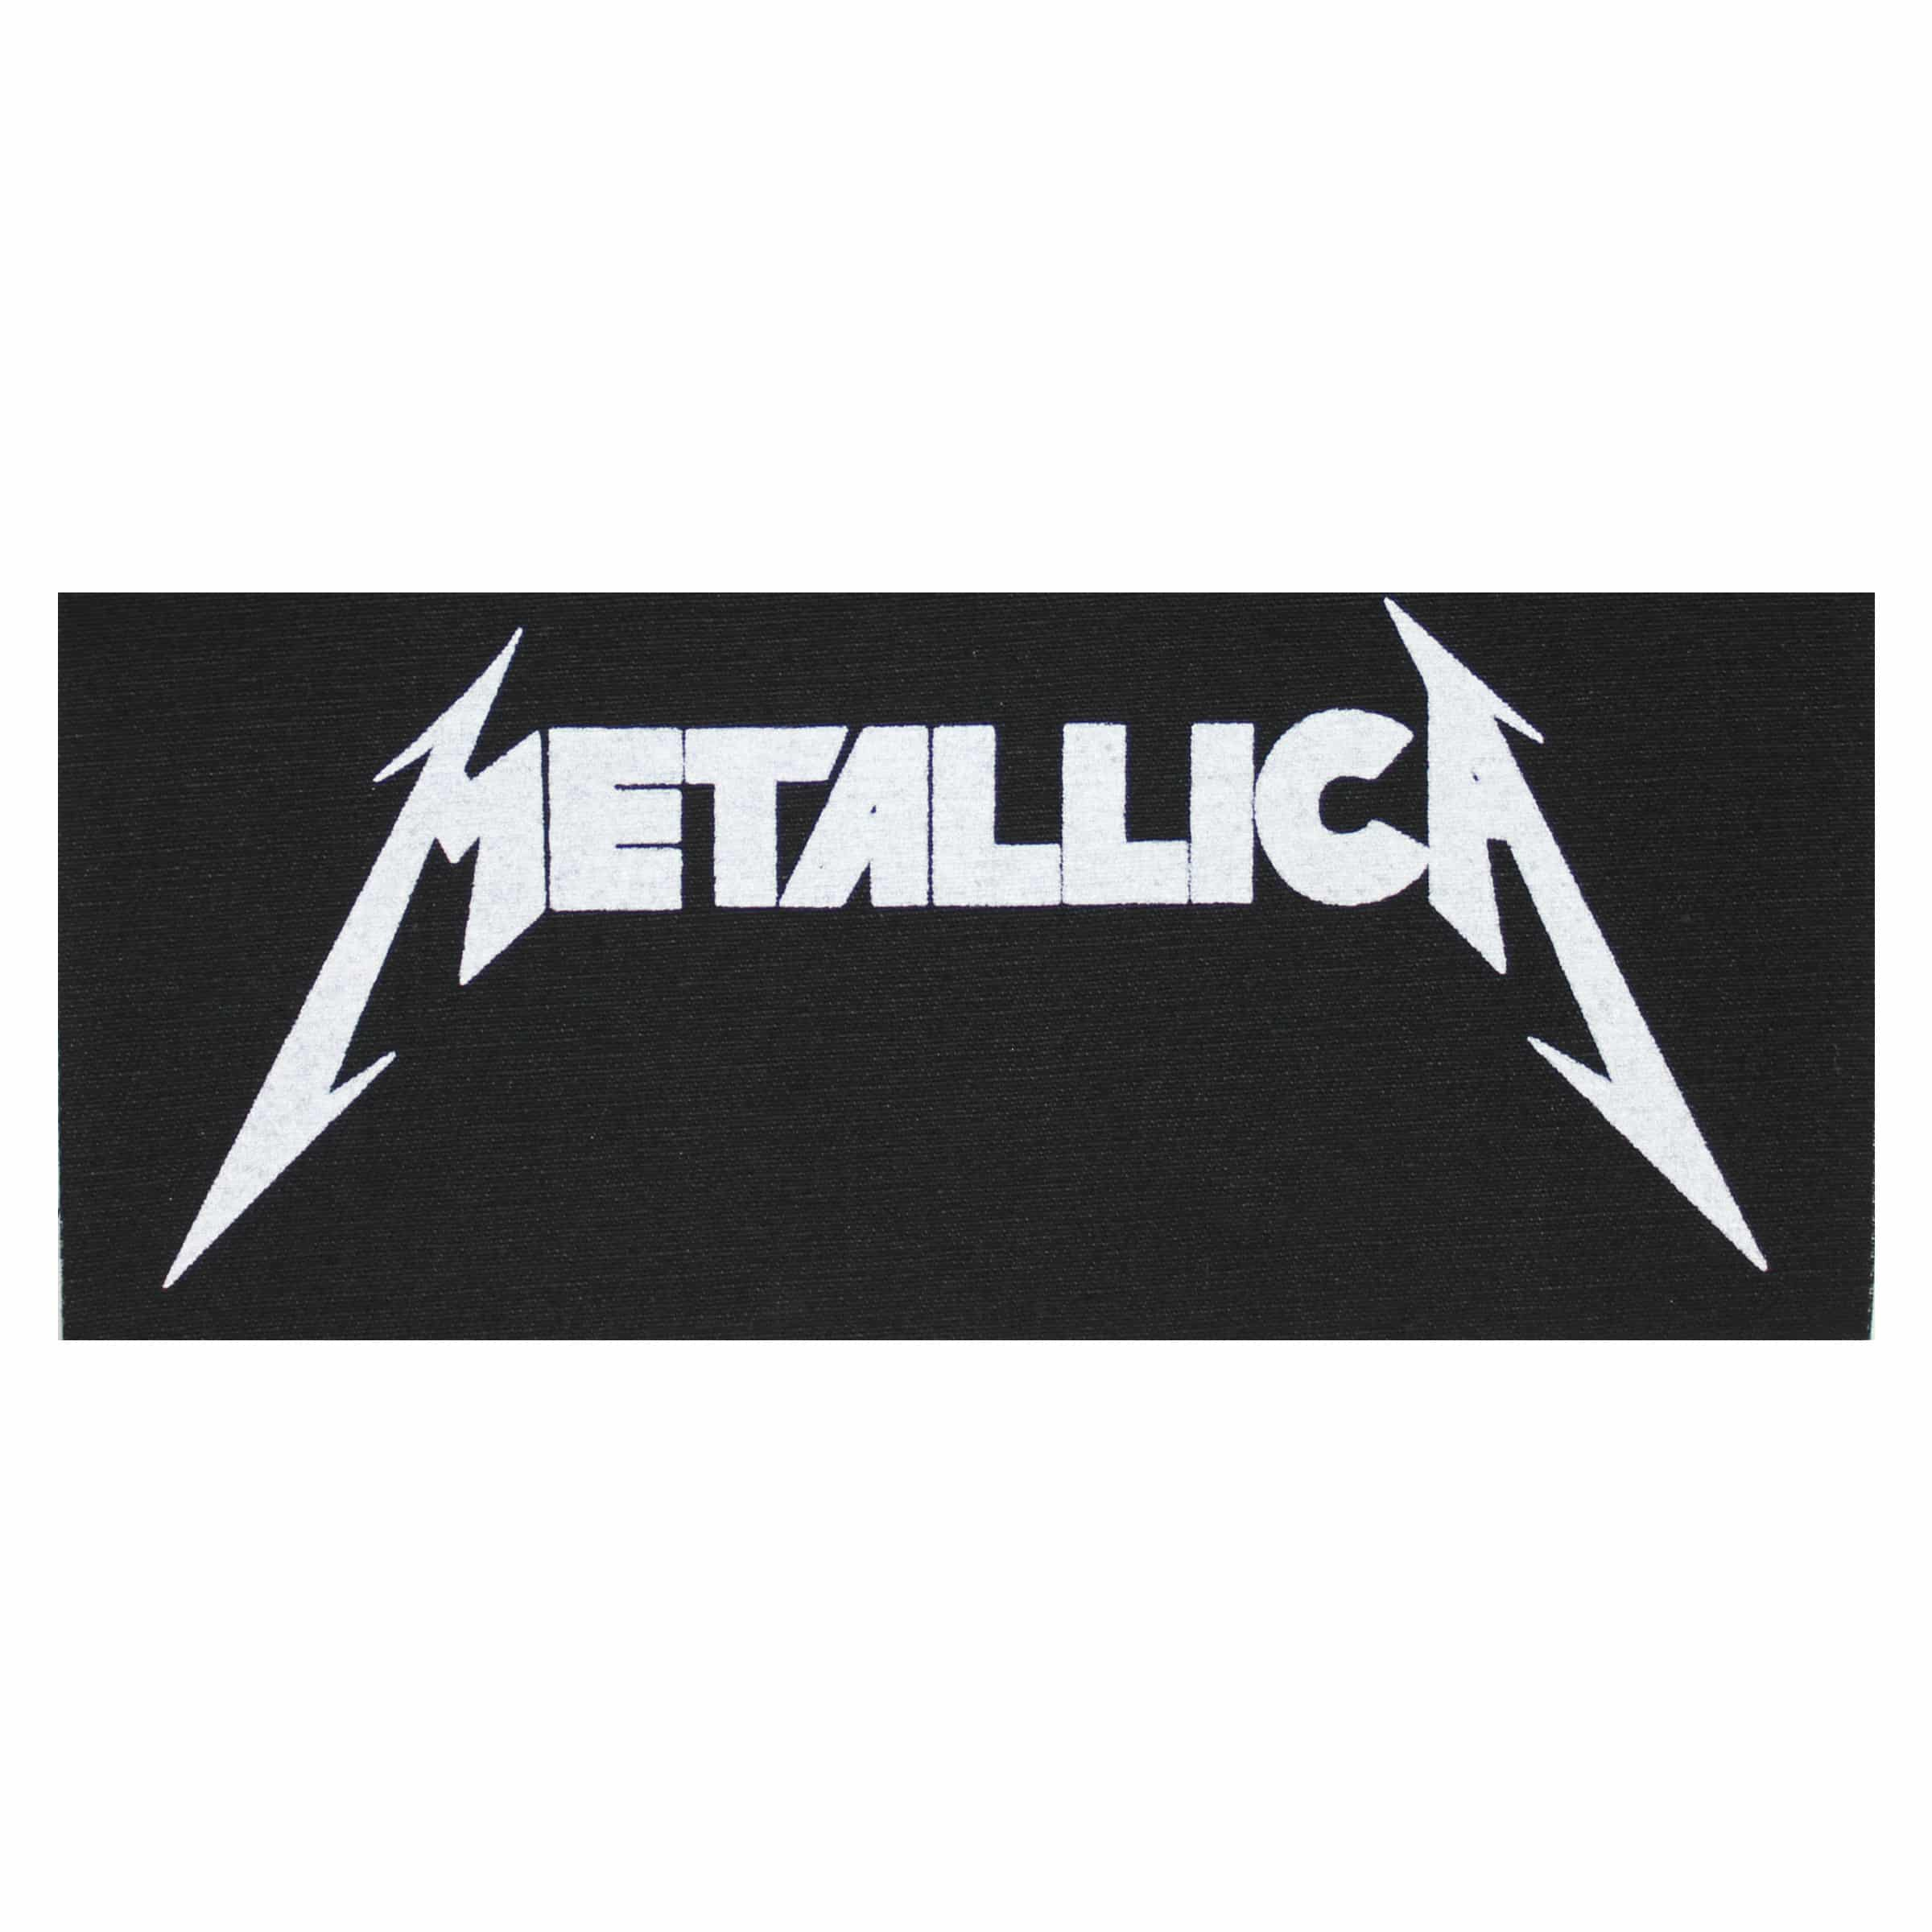 Metallica Sew On Badge Metallica Patch